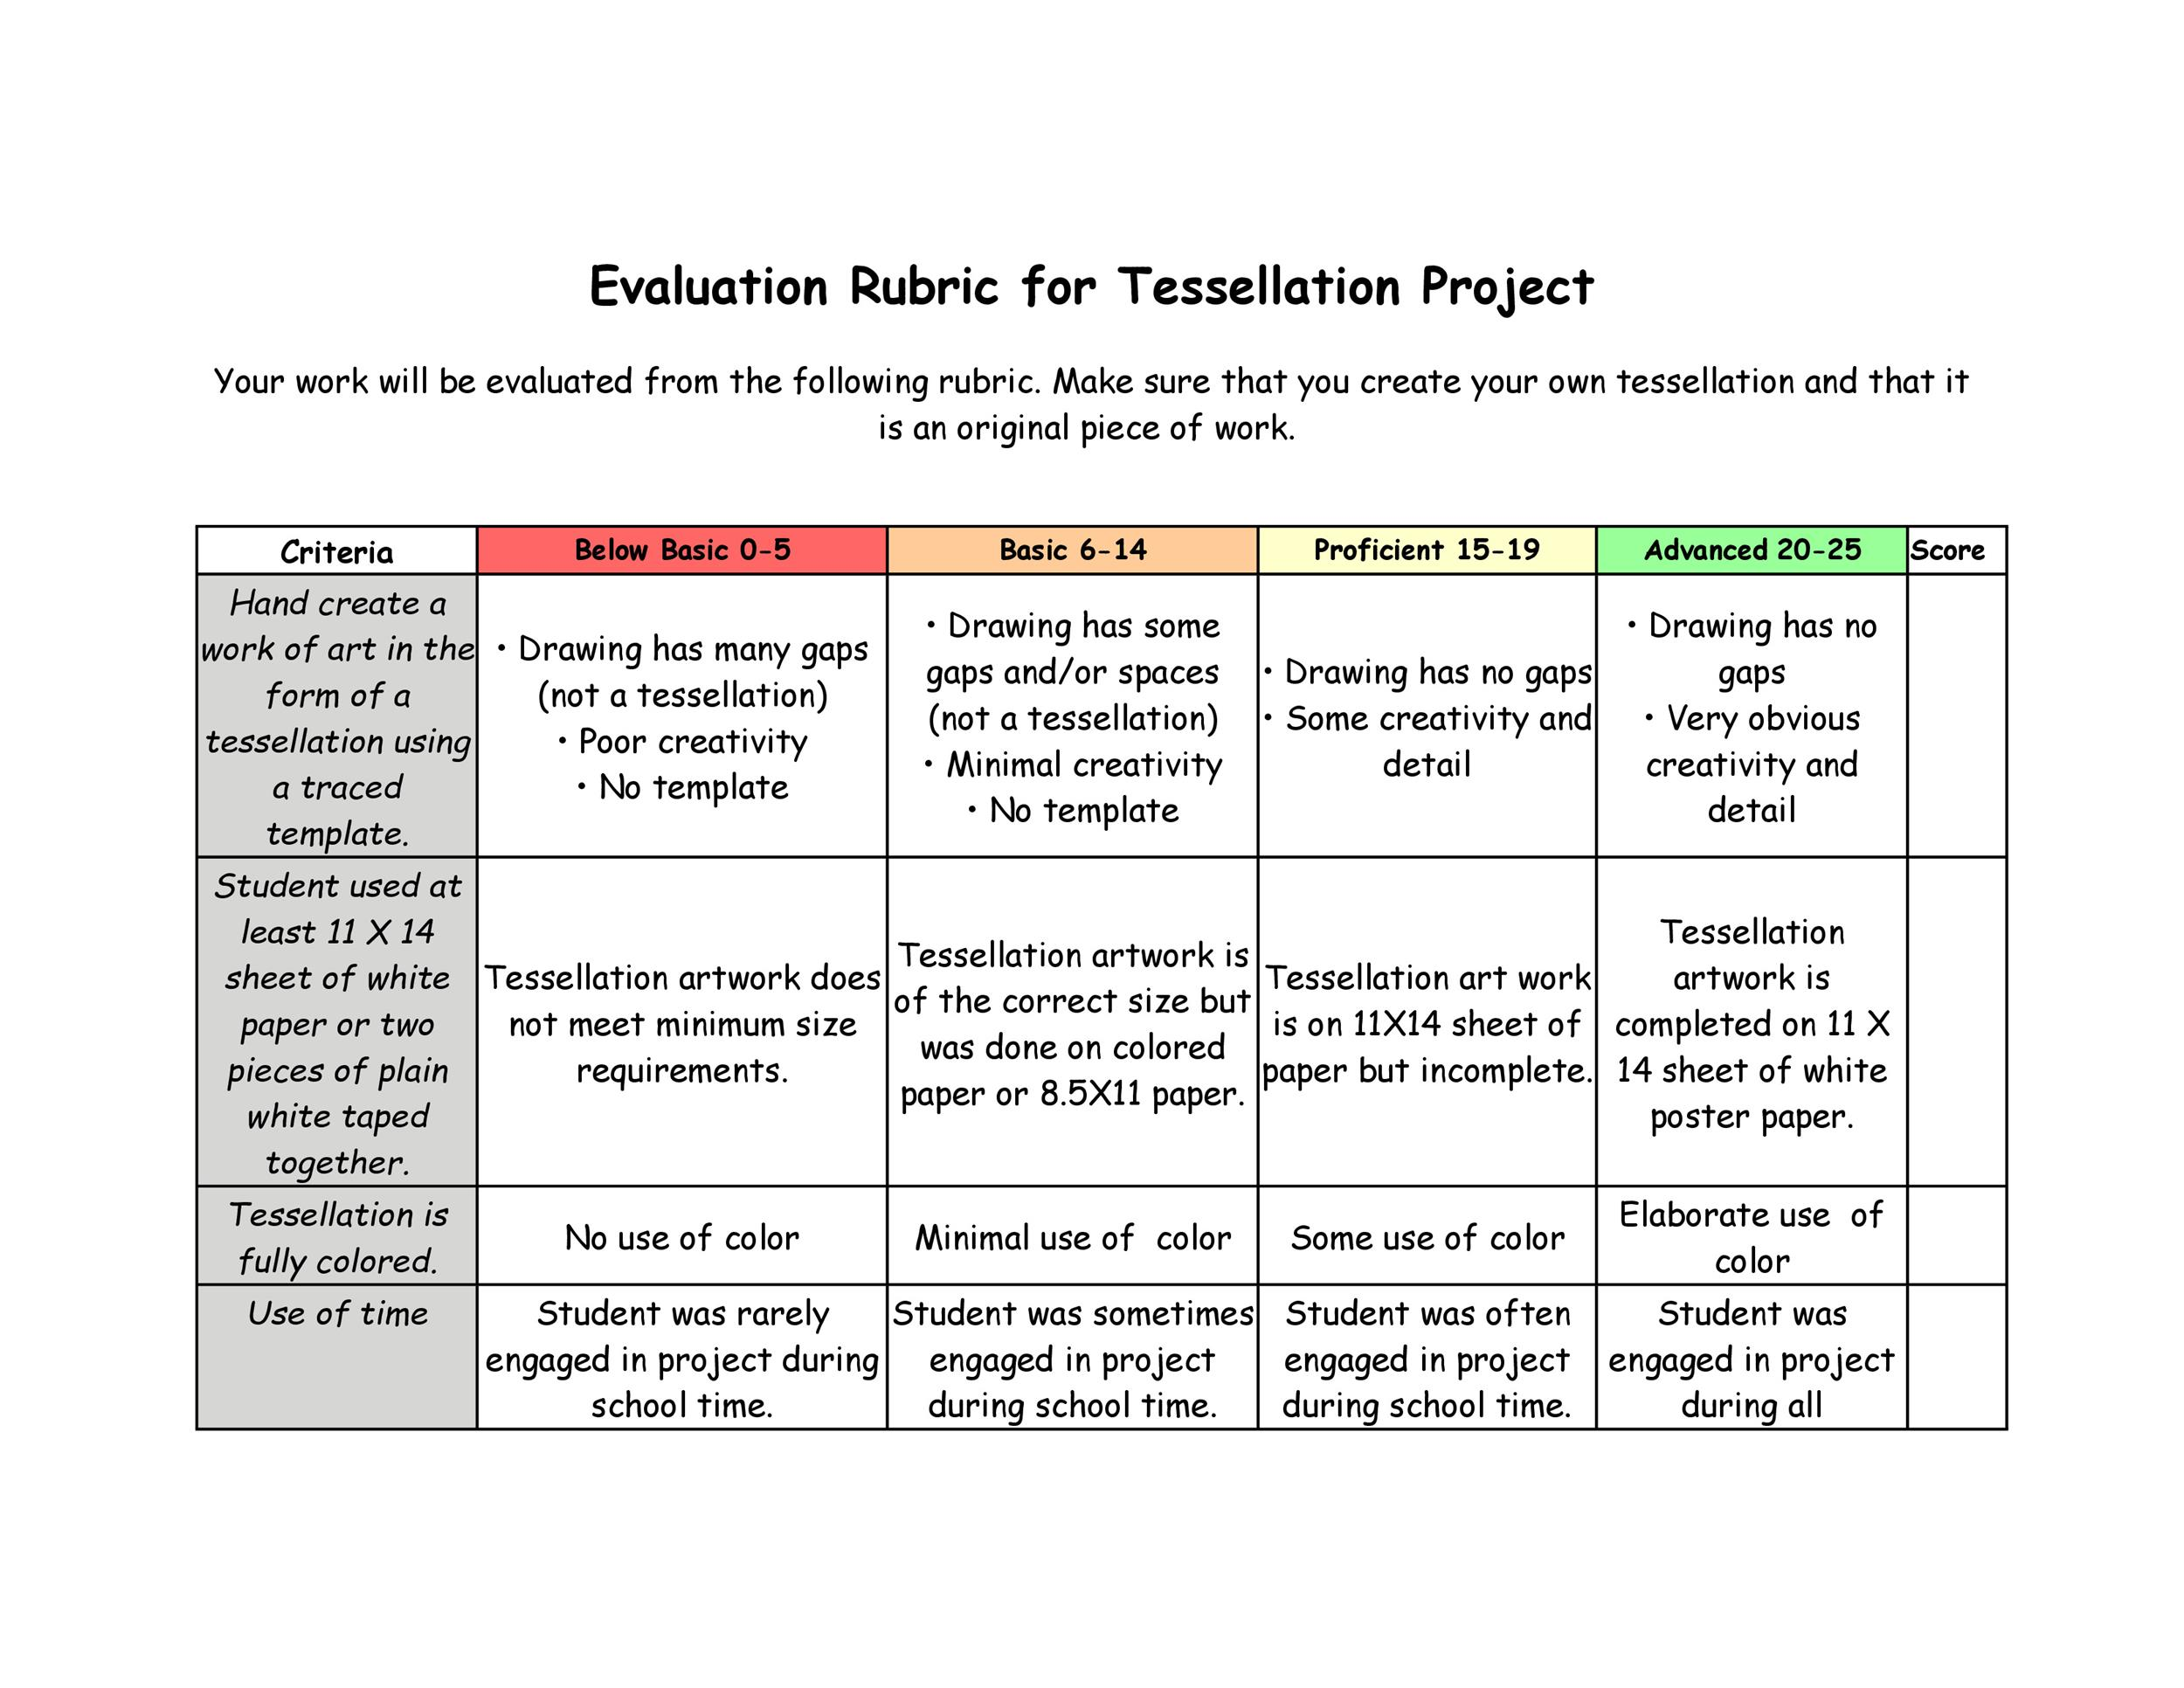 Paper Grading Rubric Template - Grading and Rubrics